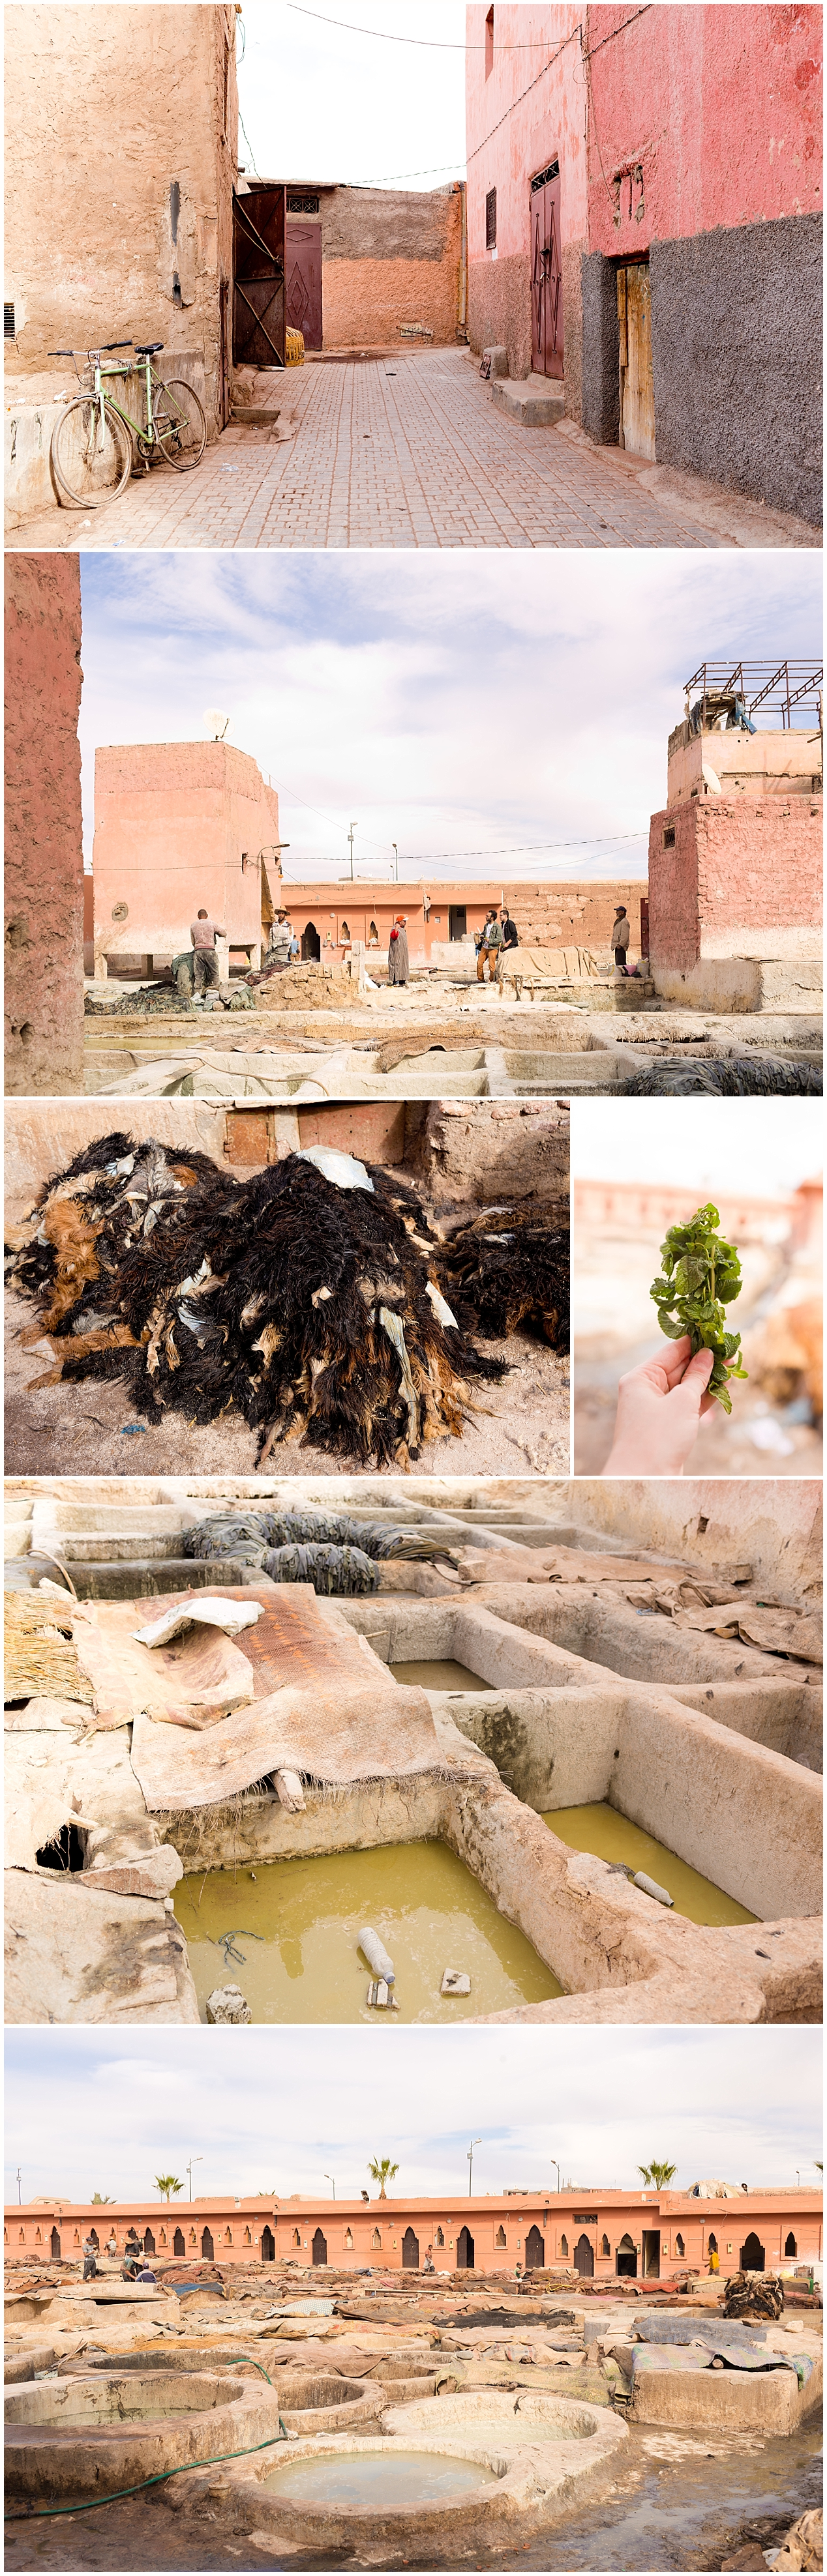 tannery tour in Marrakech, Morocco